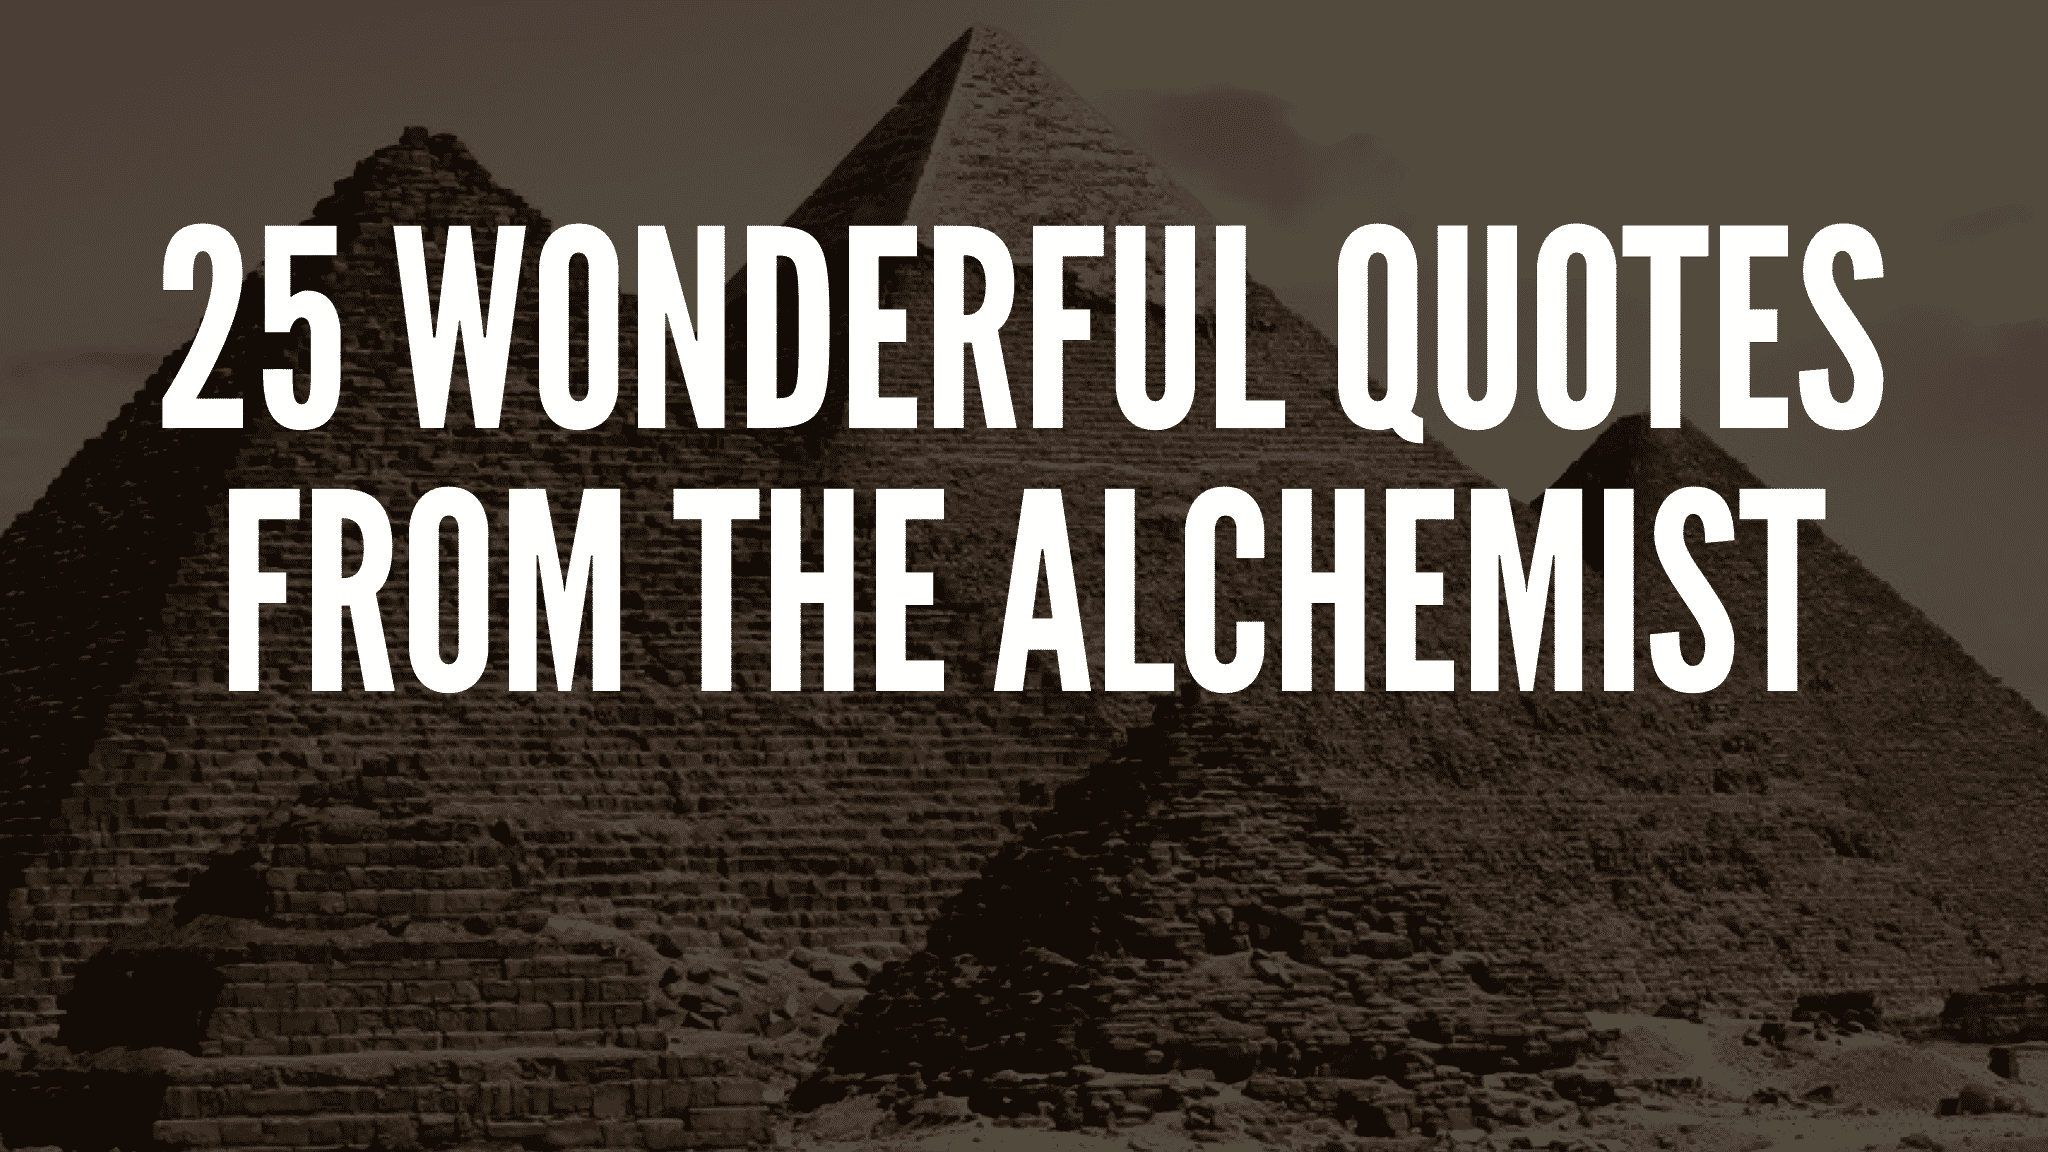 25 Wonderful Quotes From The Alchemist